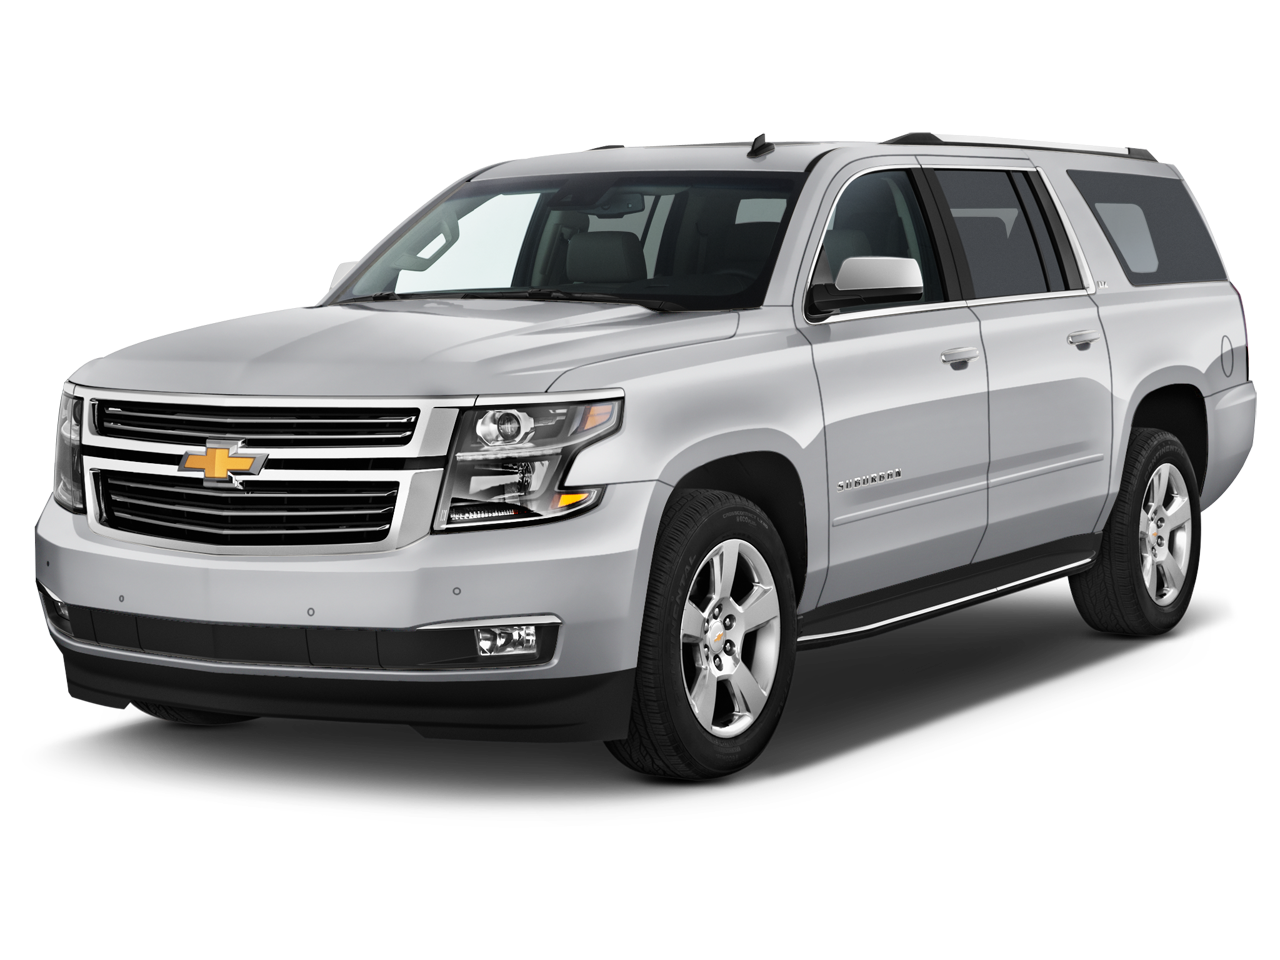 2017 chevrolet suburban 4dr 2wd near beaumont tx classic beaumont. Cars Review. Best American Auto & Cars Review